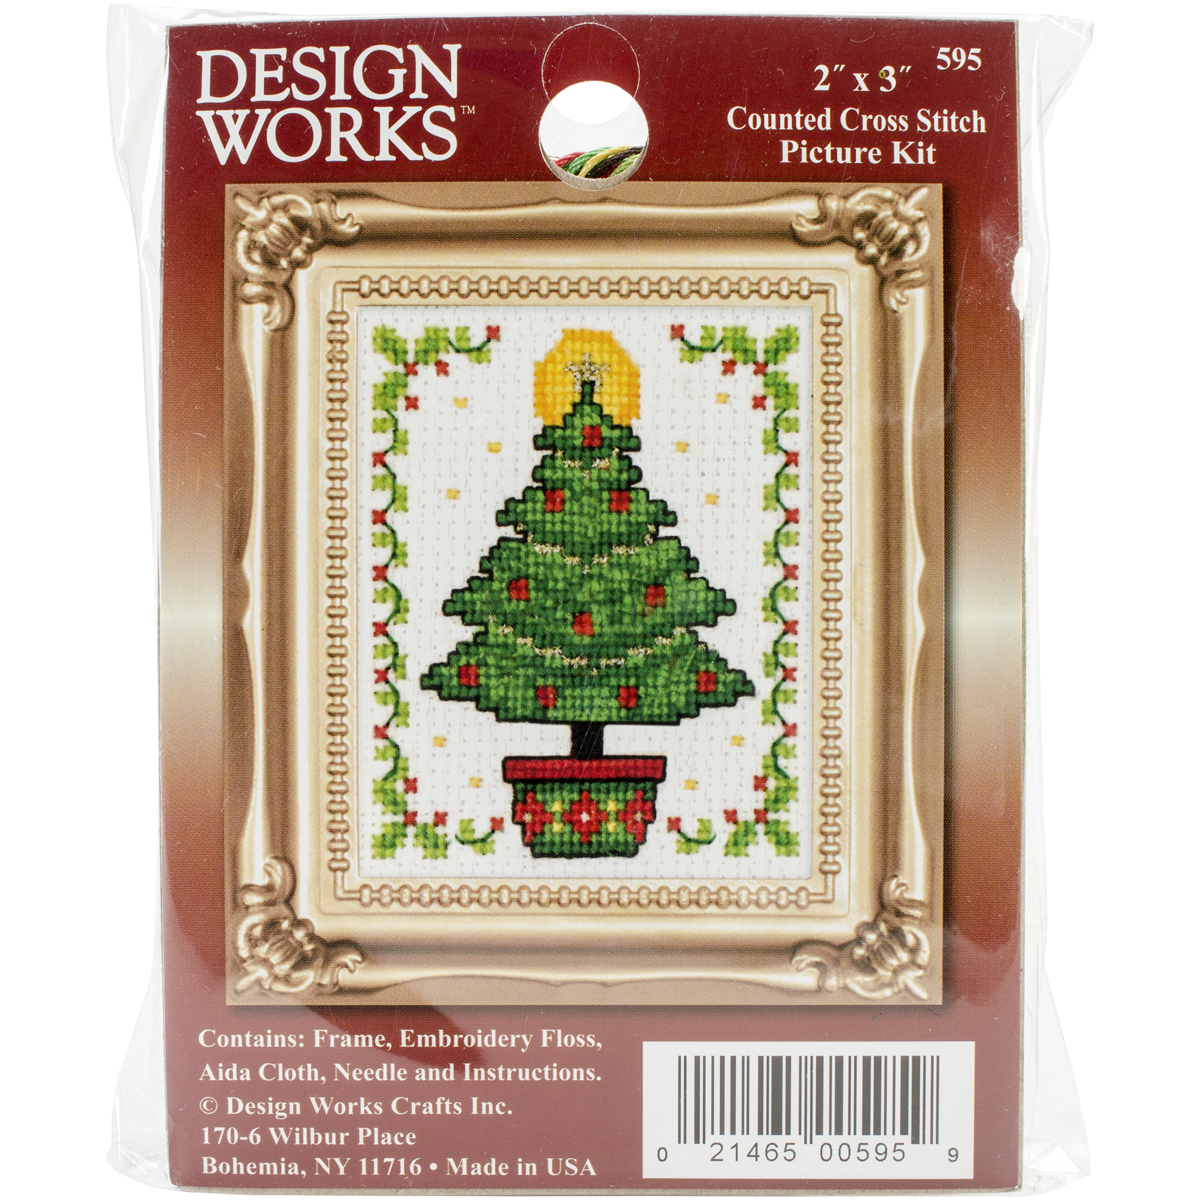 Design Works Counted Cross Stitch Kit 2X3-Christmas Tree (18 Count)